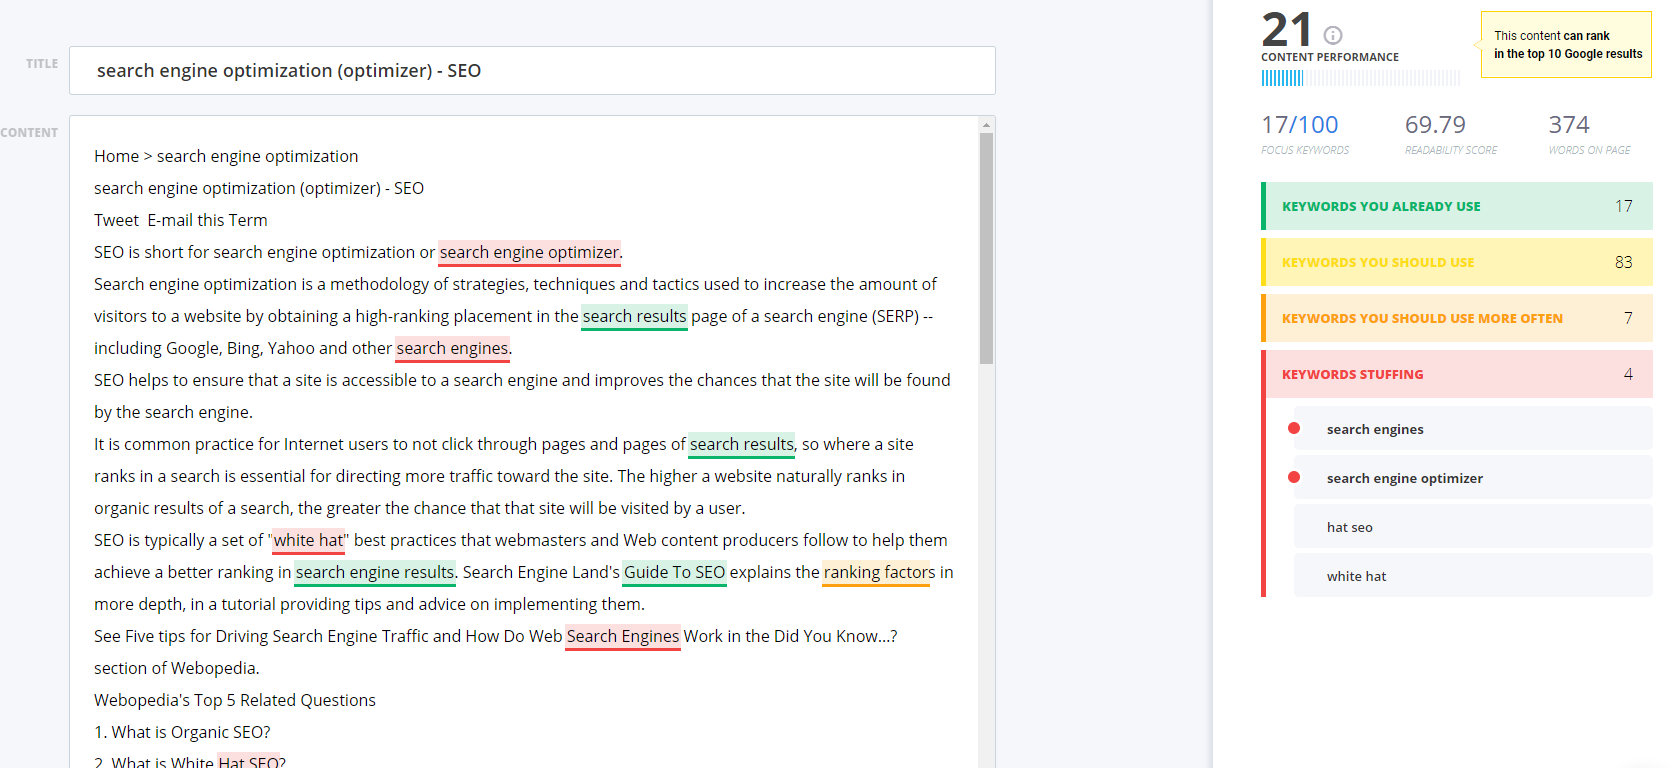 Example of keyword stuffing from Webopedia using a content optimization tool